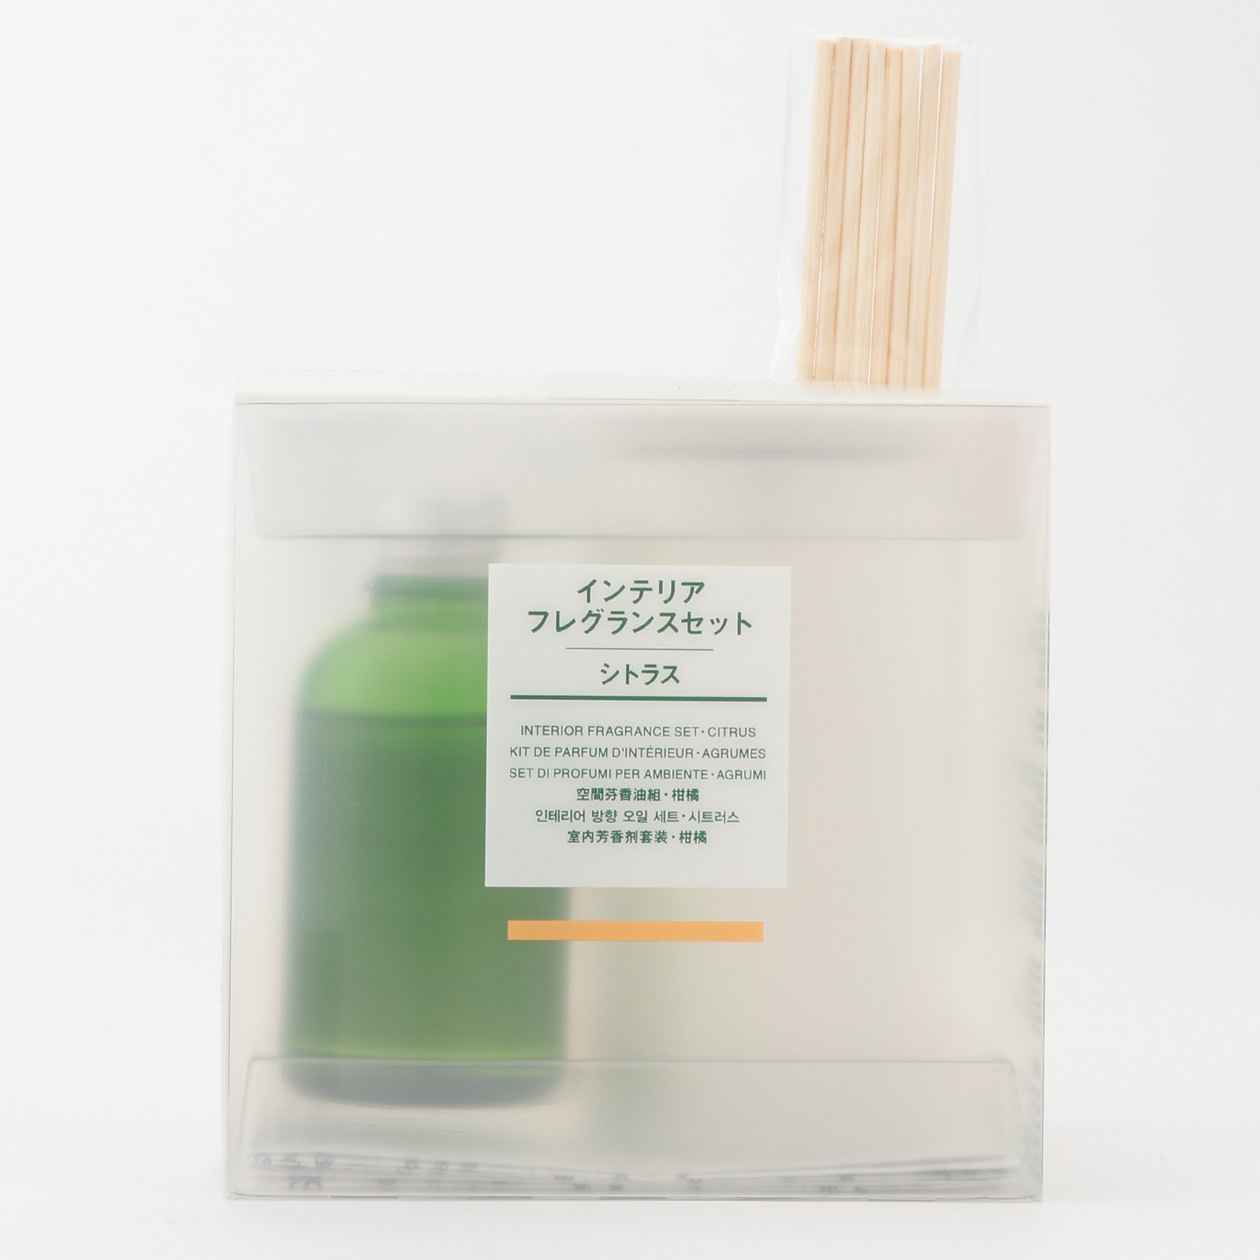 INTERIOR FRAGRANCE SET/CITRUS